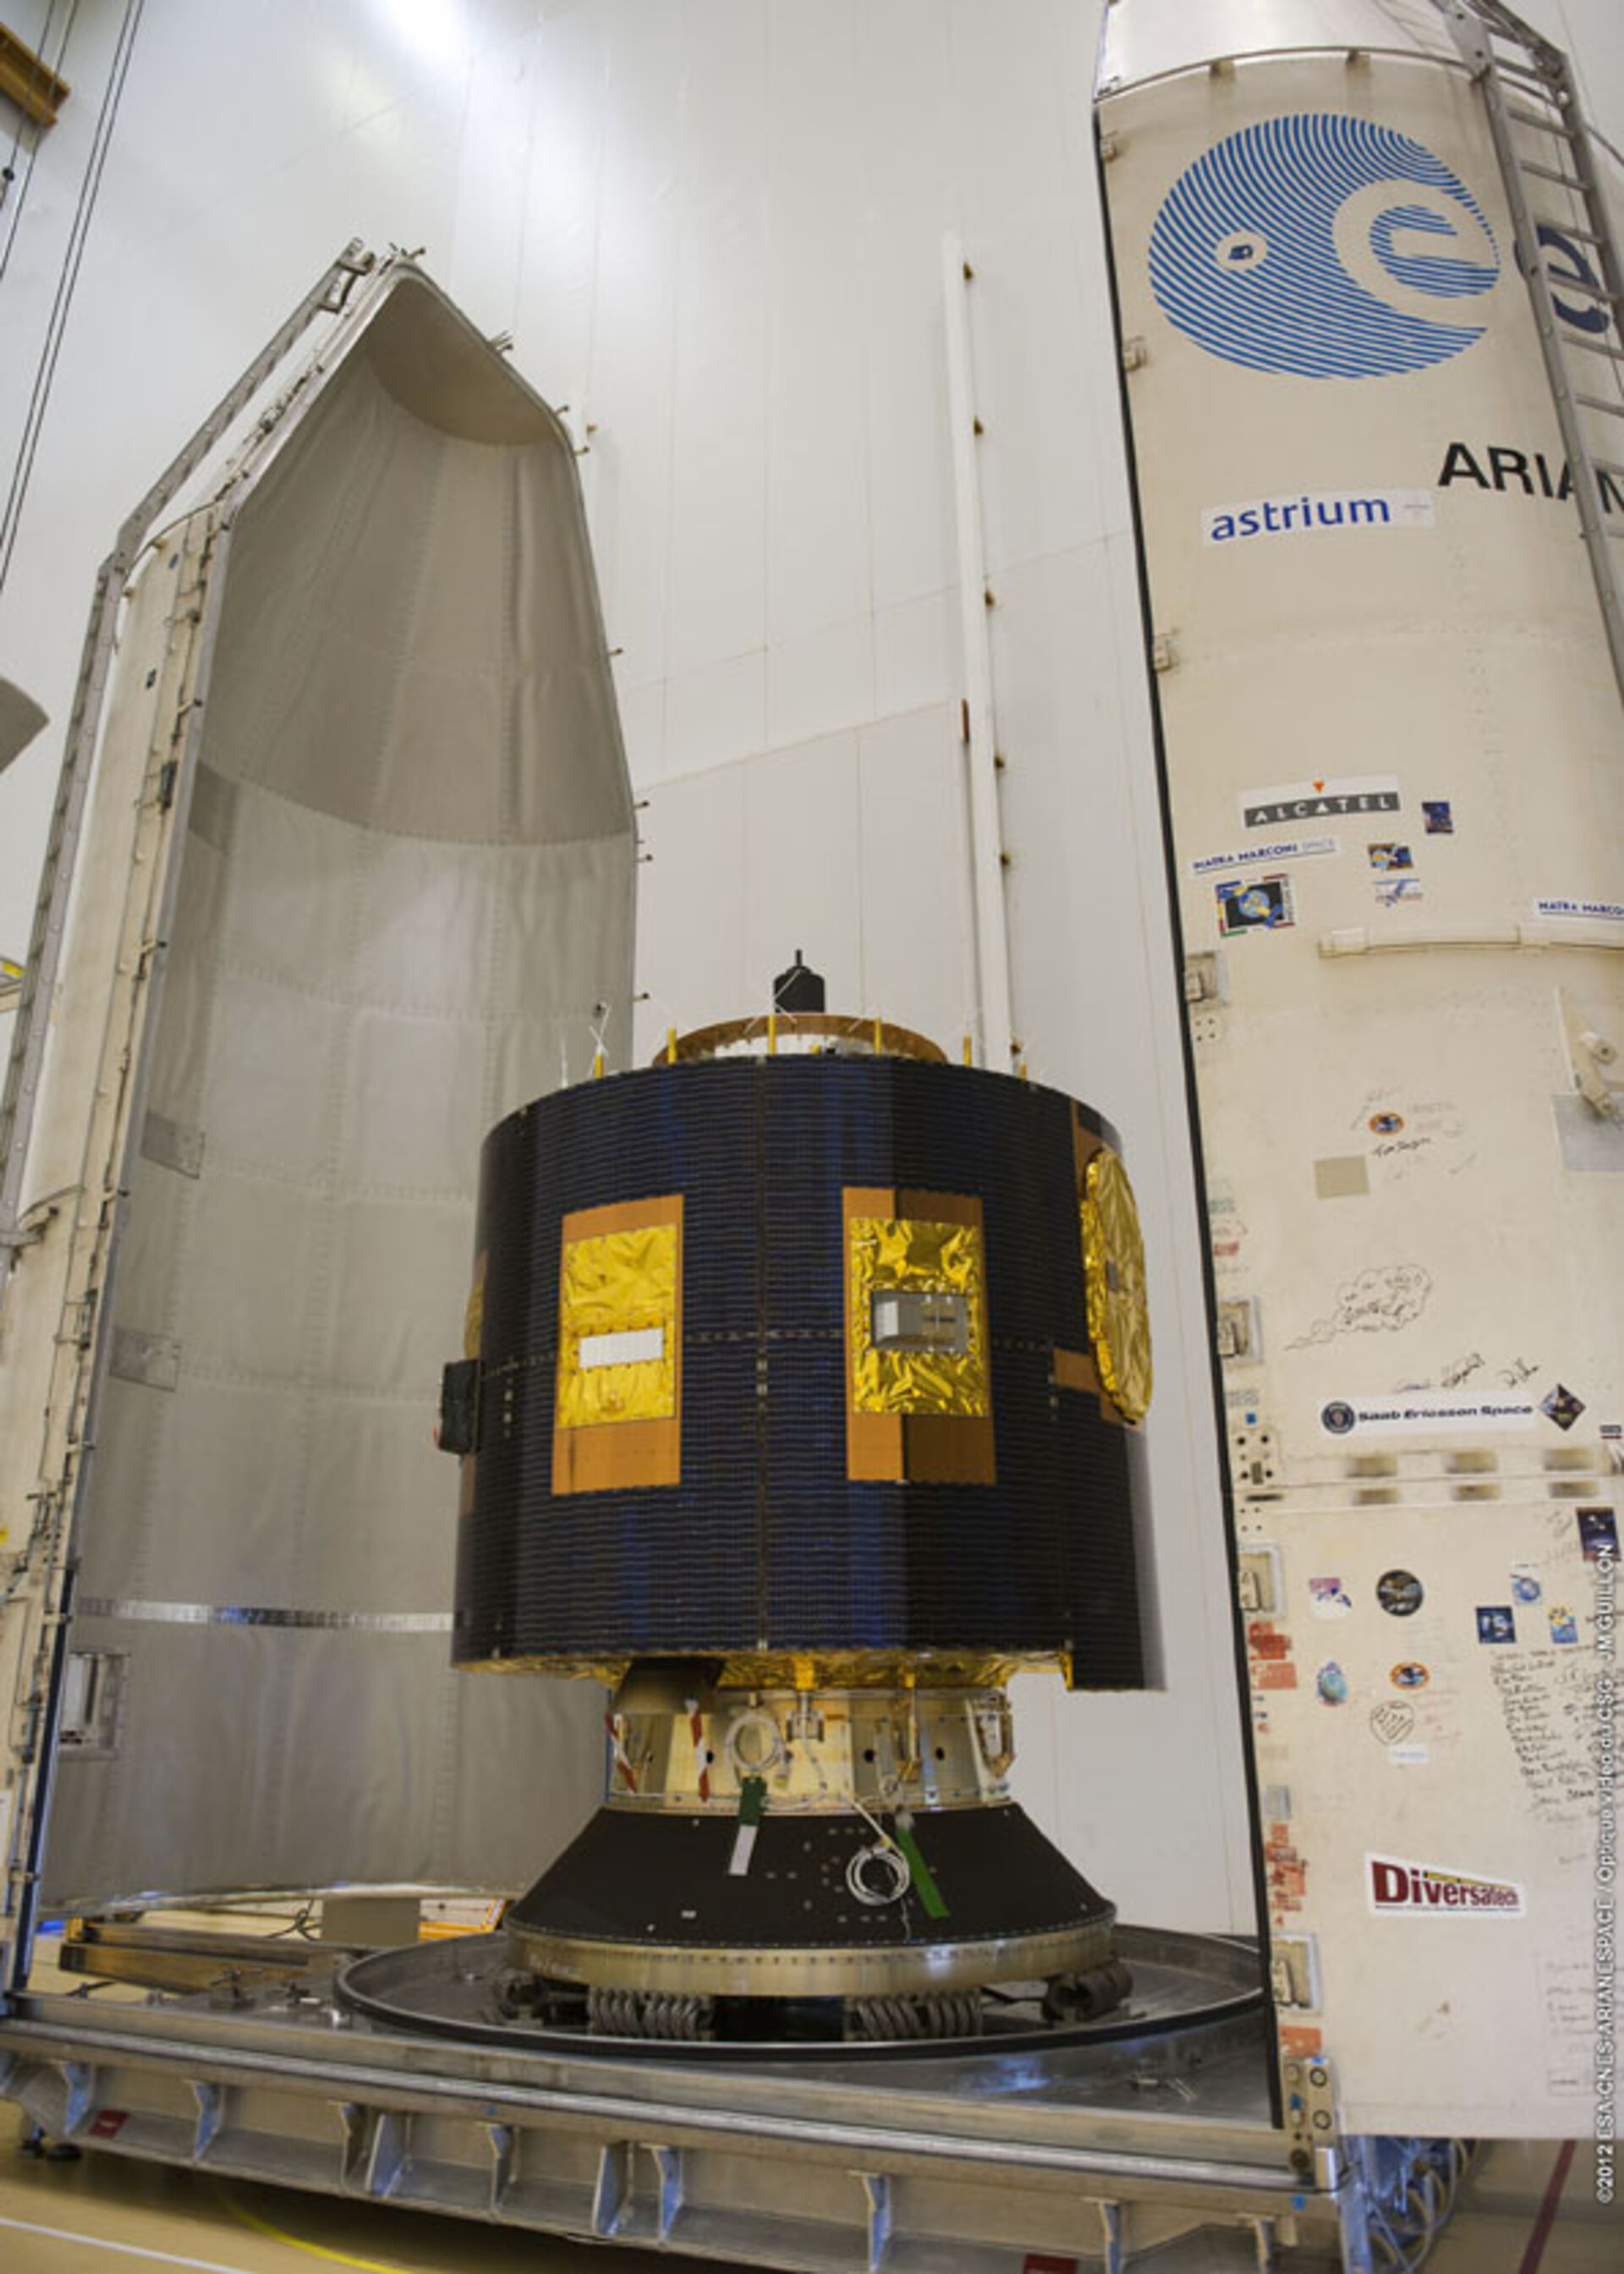 Preparations continue for MSG-3 launch